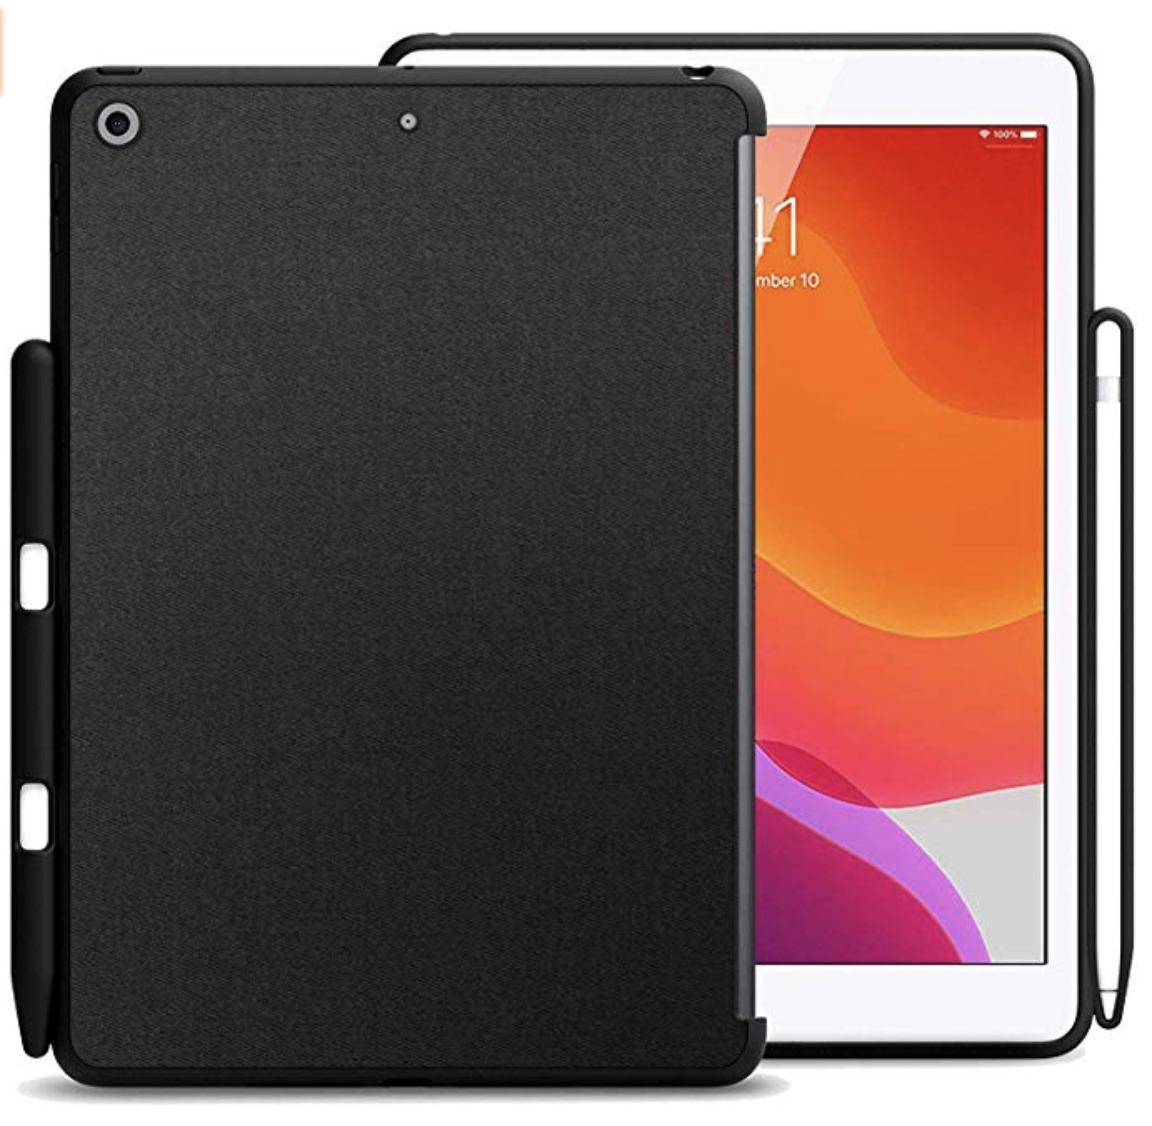 KHOMO iPad Case with Pencil Holder (2019 / 7th Generation) - Companion Back Cover - Black